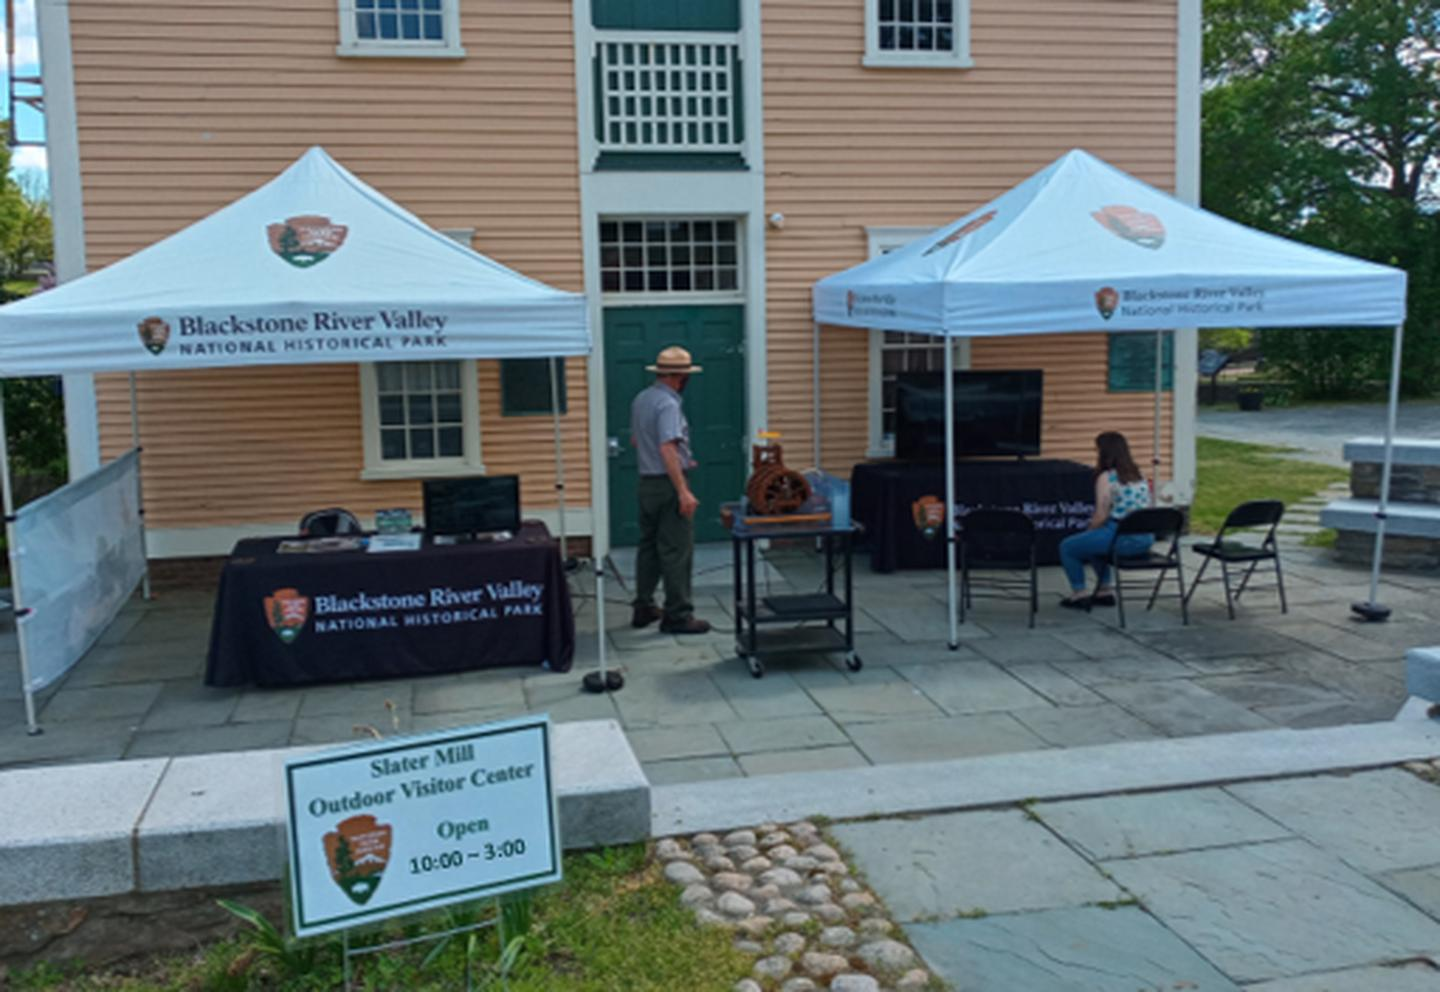 Visitor watching video at Slater Mill Outdoor Visitor Center